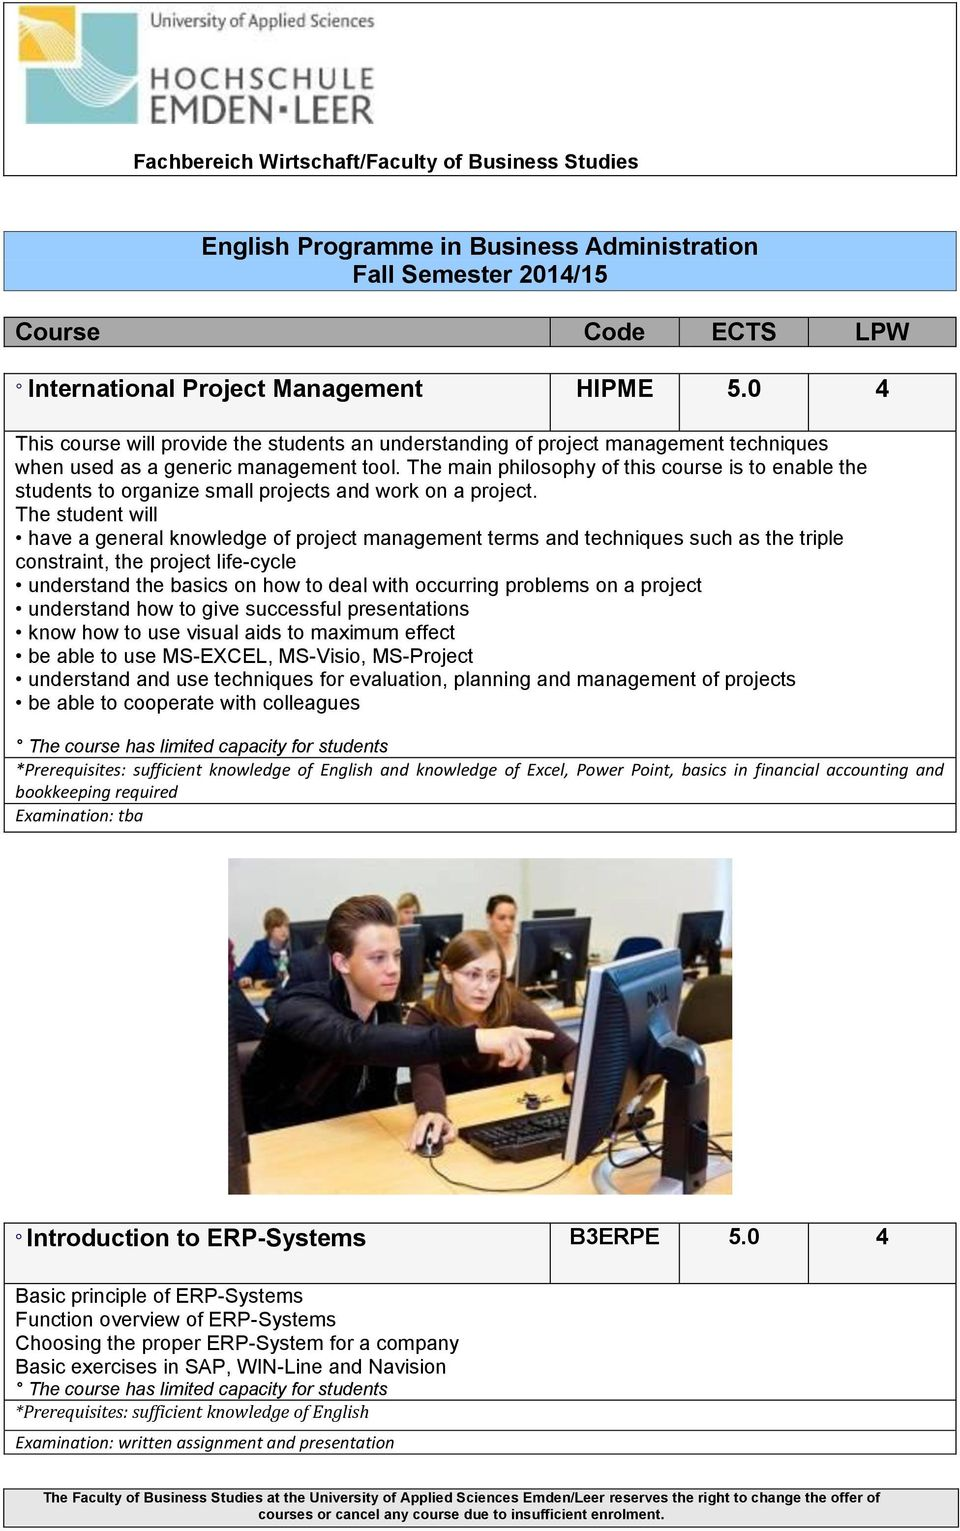 The student will have a general knowledge of project management terms and techniques such as the triple constraint, the project life-cycle understand the basics on how to deal with occurring problems